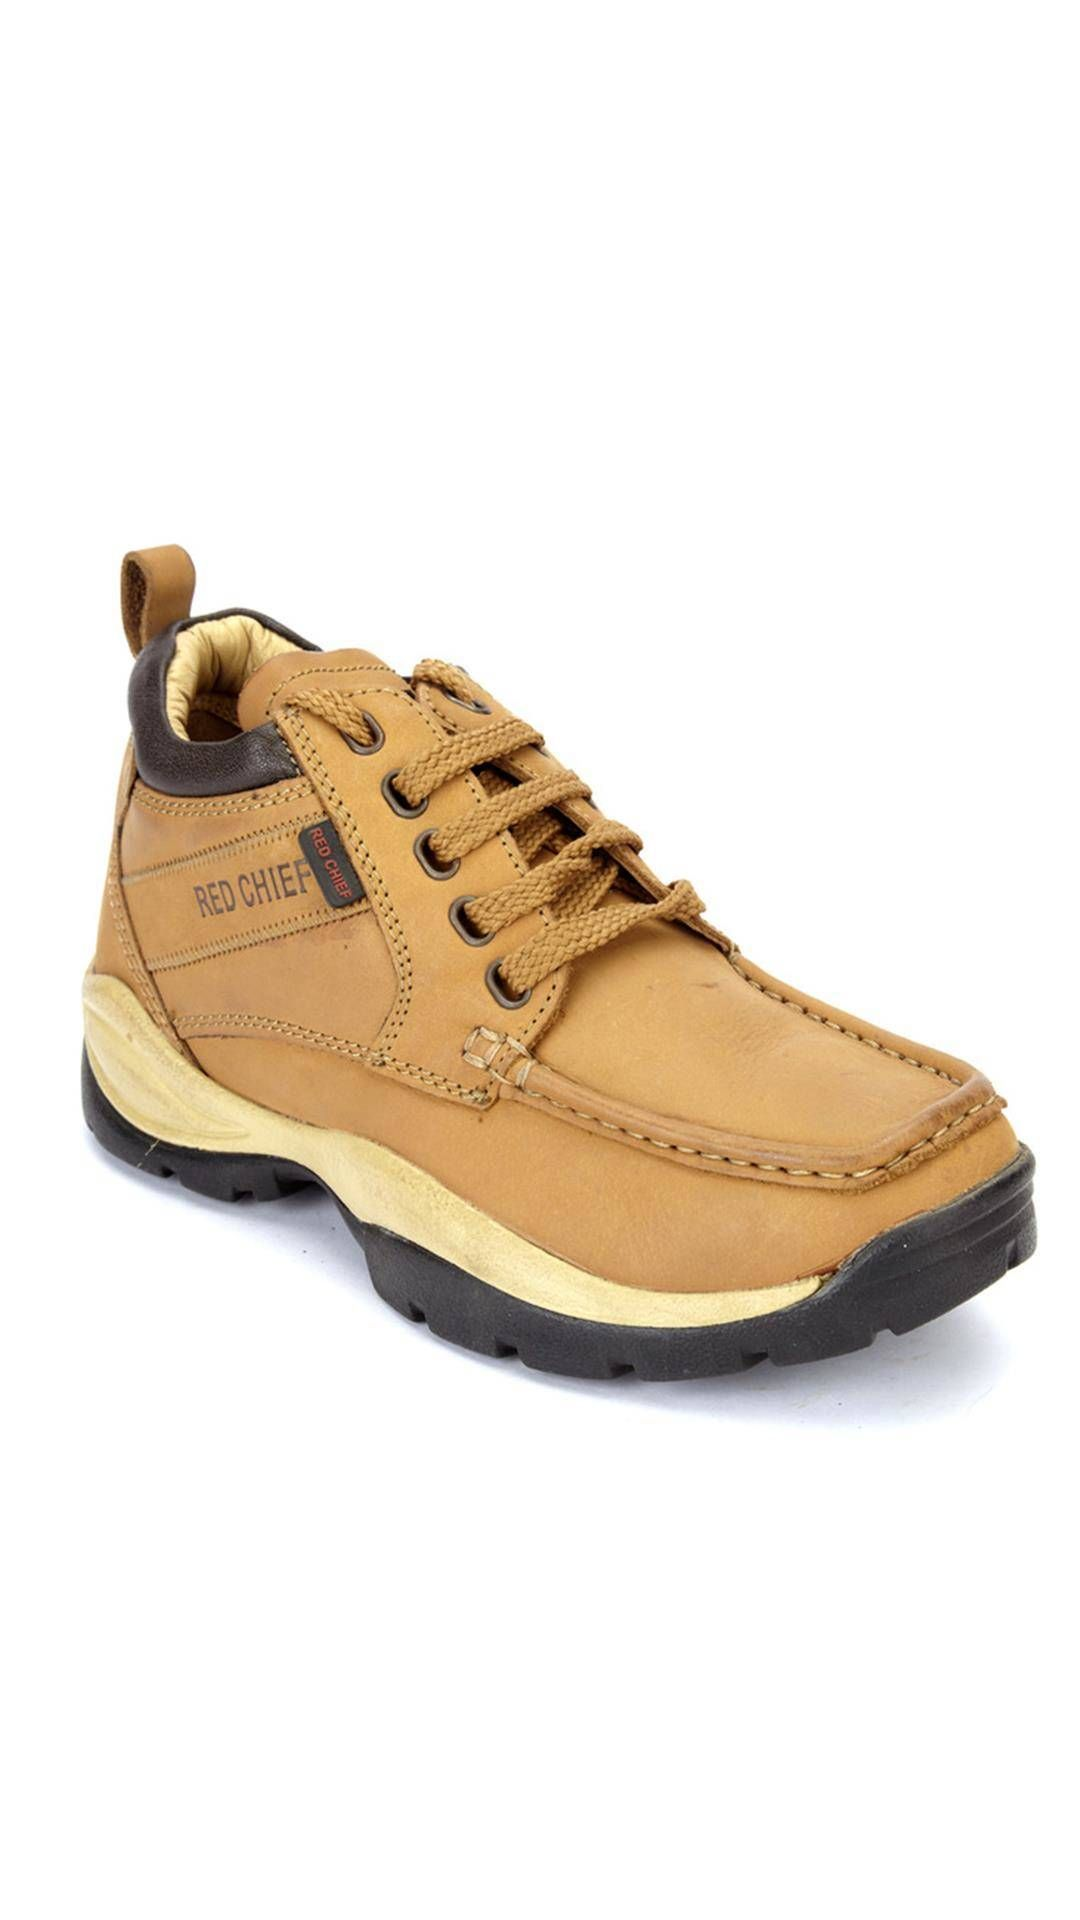 RED CHIEF Leather RUST Casual Shoe for Men 272cde42c1a76